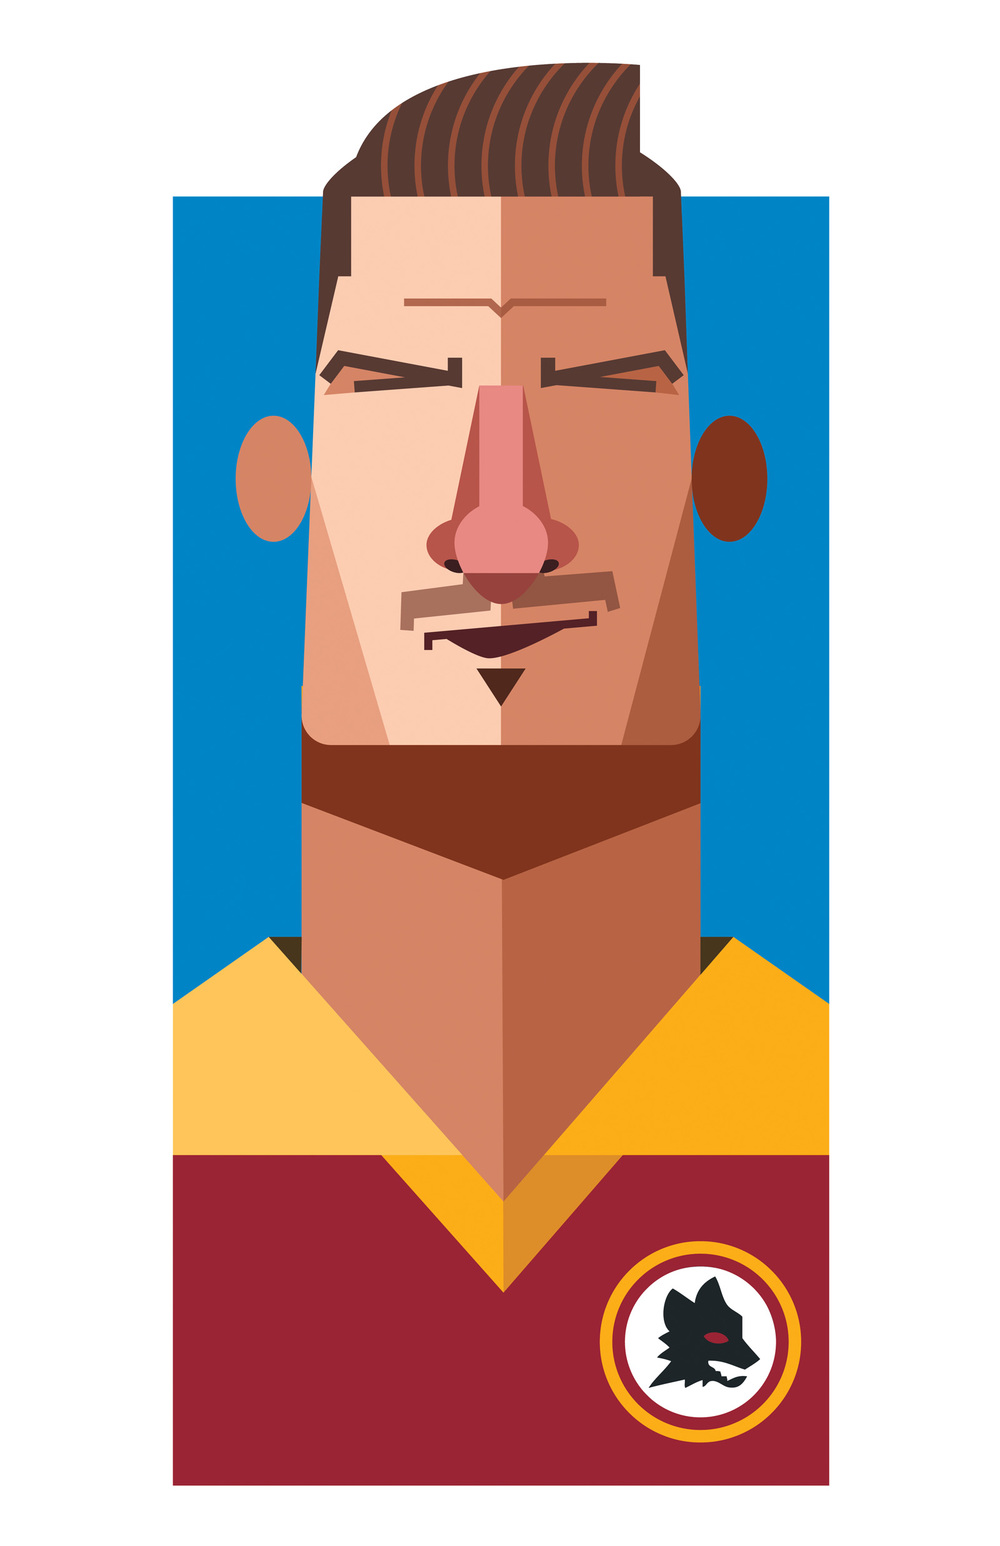 Playmakers_Totti.jpg